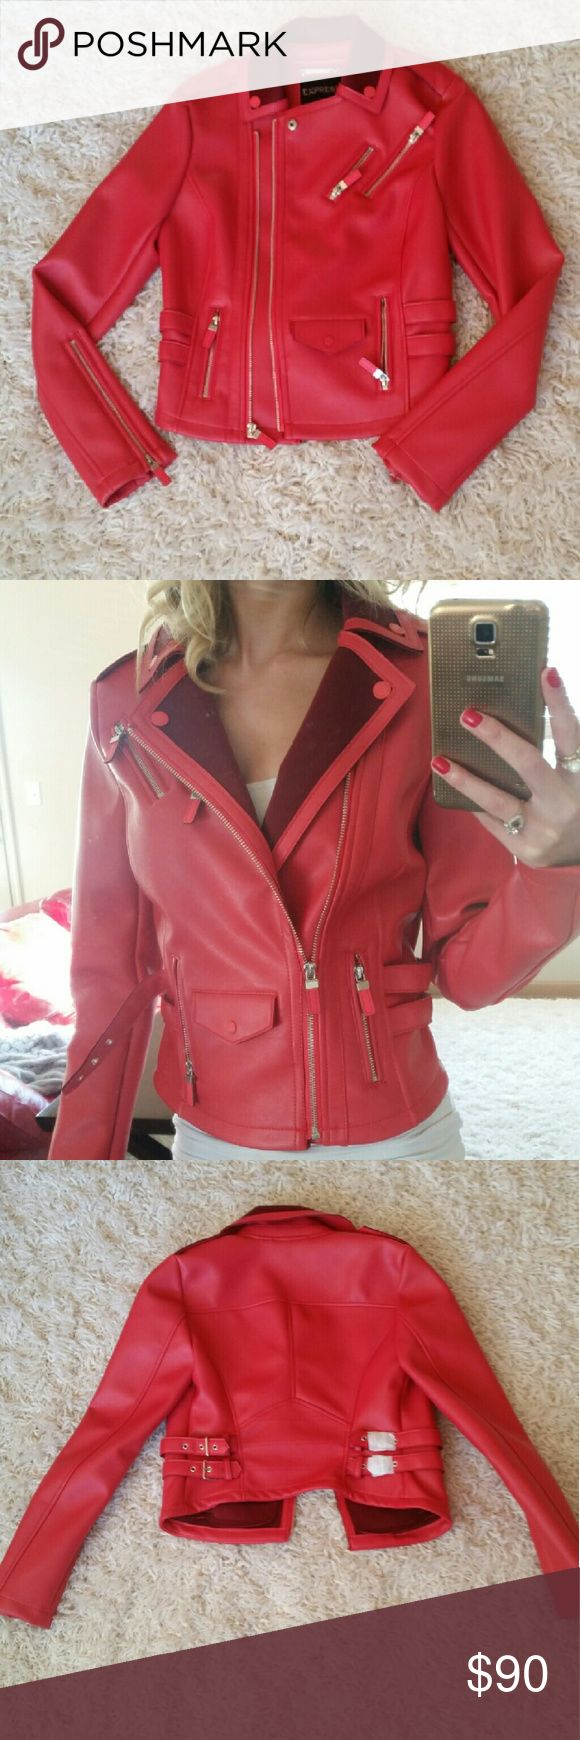 NWT Express womens slim moto faux leather jacket Hot red faux leather jacket! 4 zippers in the front. A zipper on each sleeve. 4 buckles in the back! Slim fit jacket. Brand new, buckles still covered for protection.   Shell face :100% polyurethane Shell back: 94% polyester, 6% spandex Size: XS Express Jackets & Coats